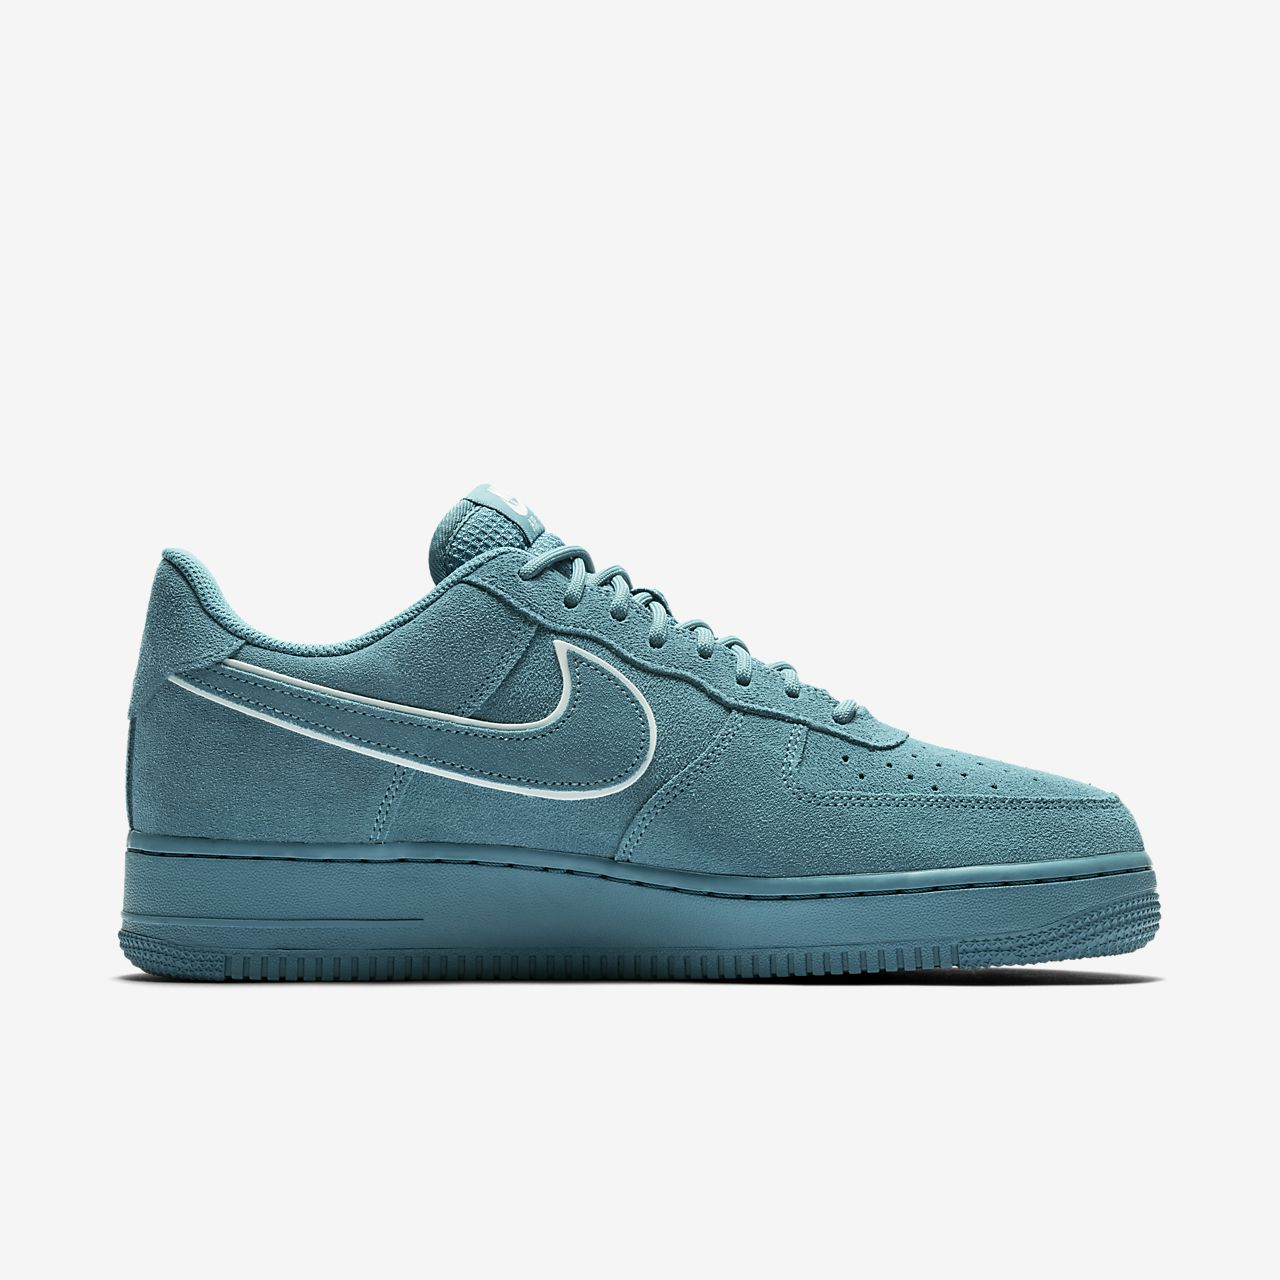 nike air force 1 07 lv8 men's shoe nz